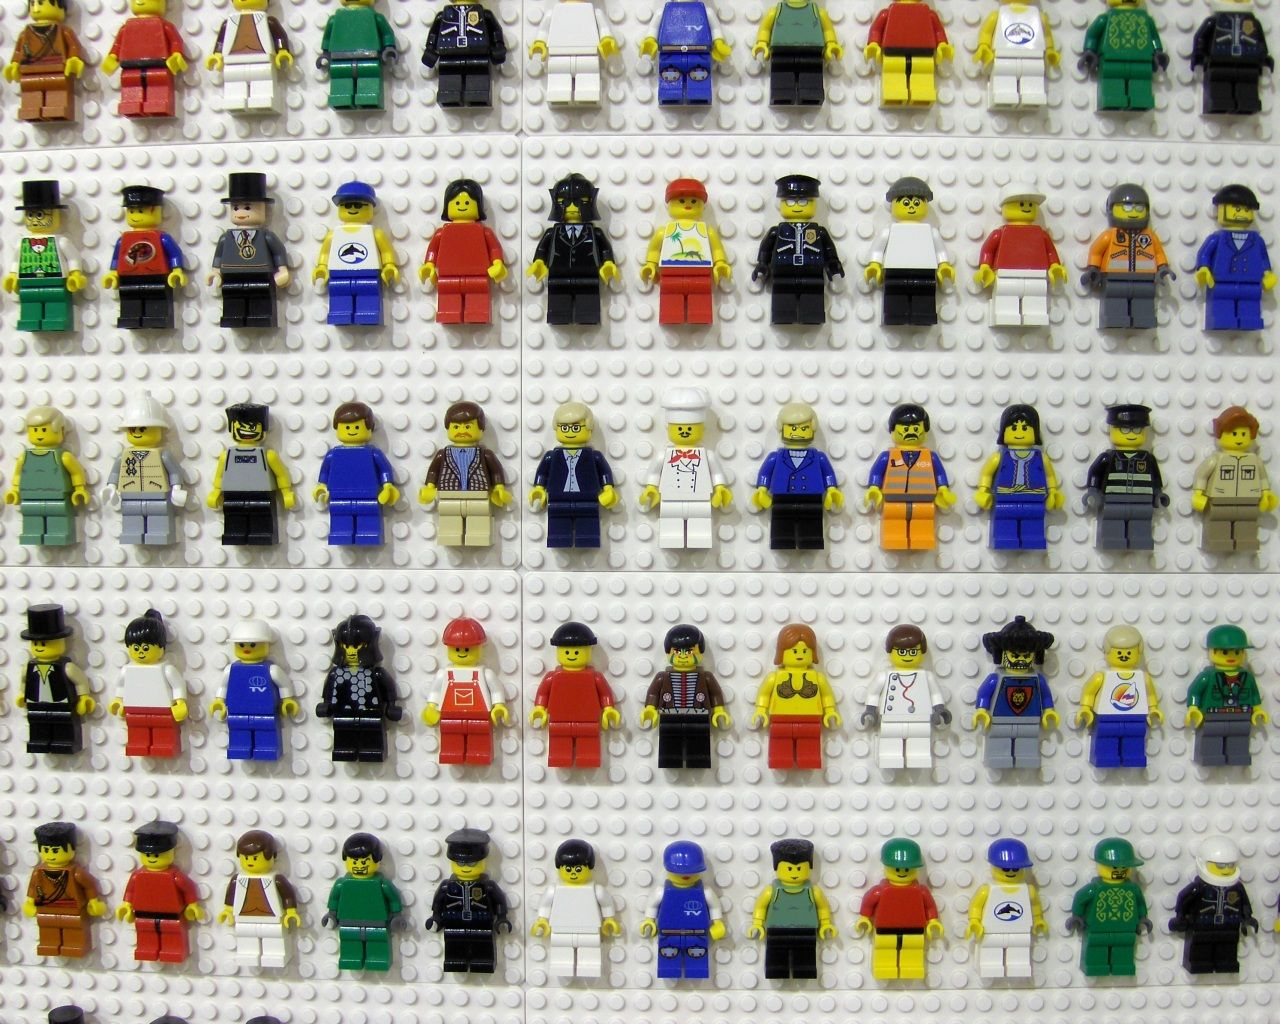 """I think we already have this many Lego guys are more...cute idea to display them and add """"art"""" to the room"""